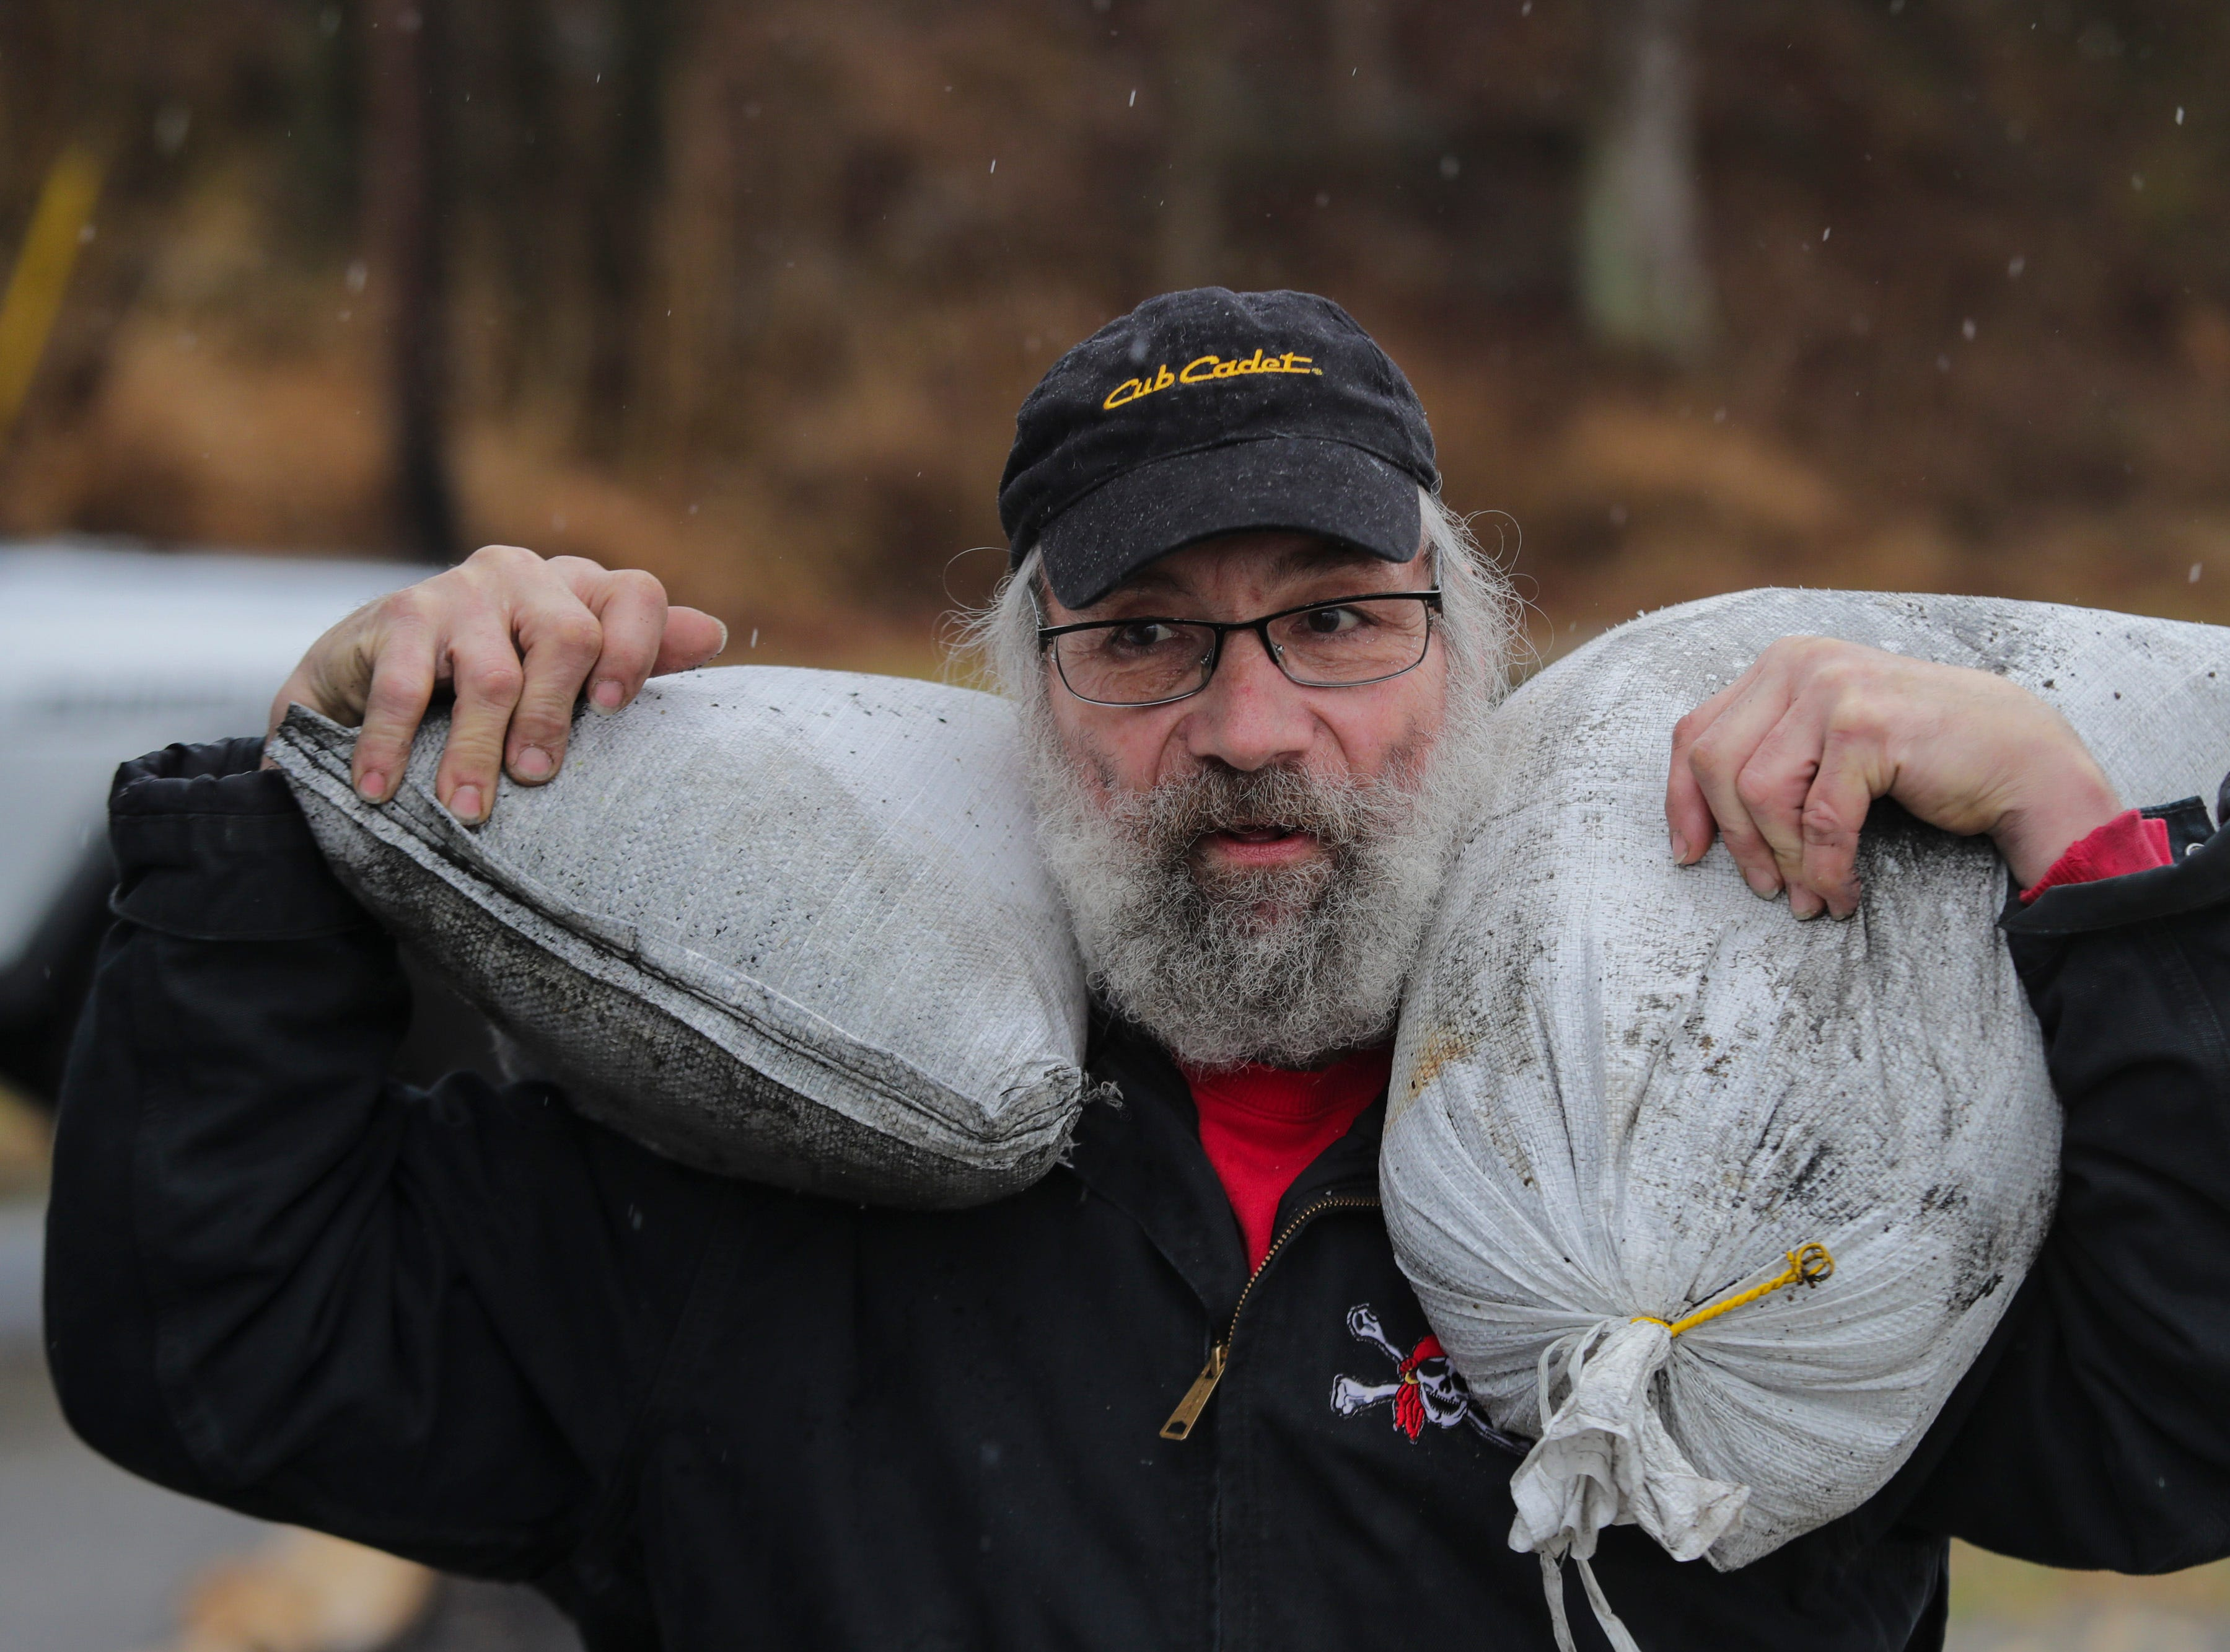 Tony Watterson carries two sandbags into a home in Utica, Ind. as Ohio River water levels begin to rise. Feb. 11, 2019